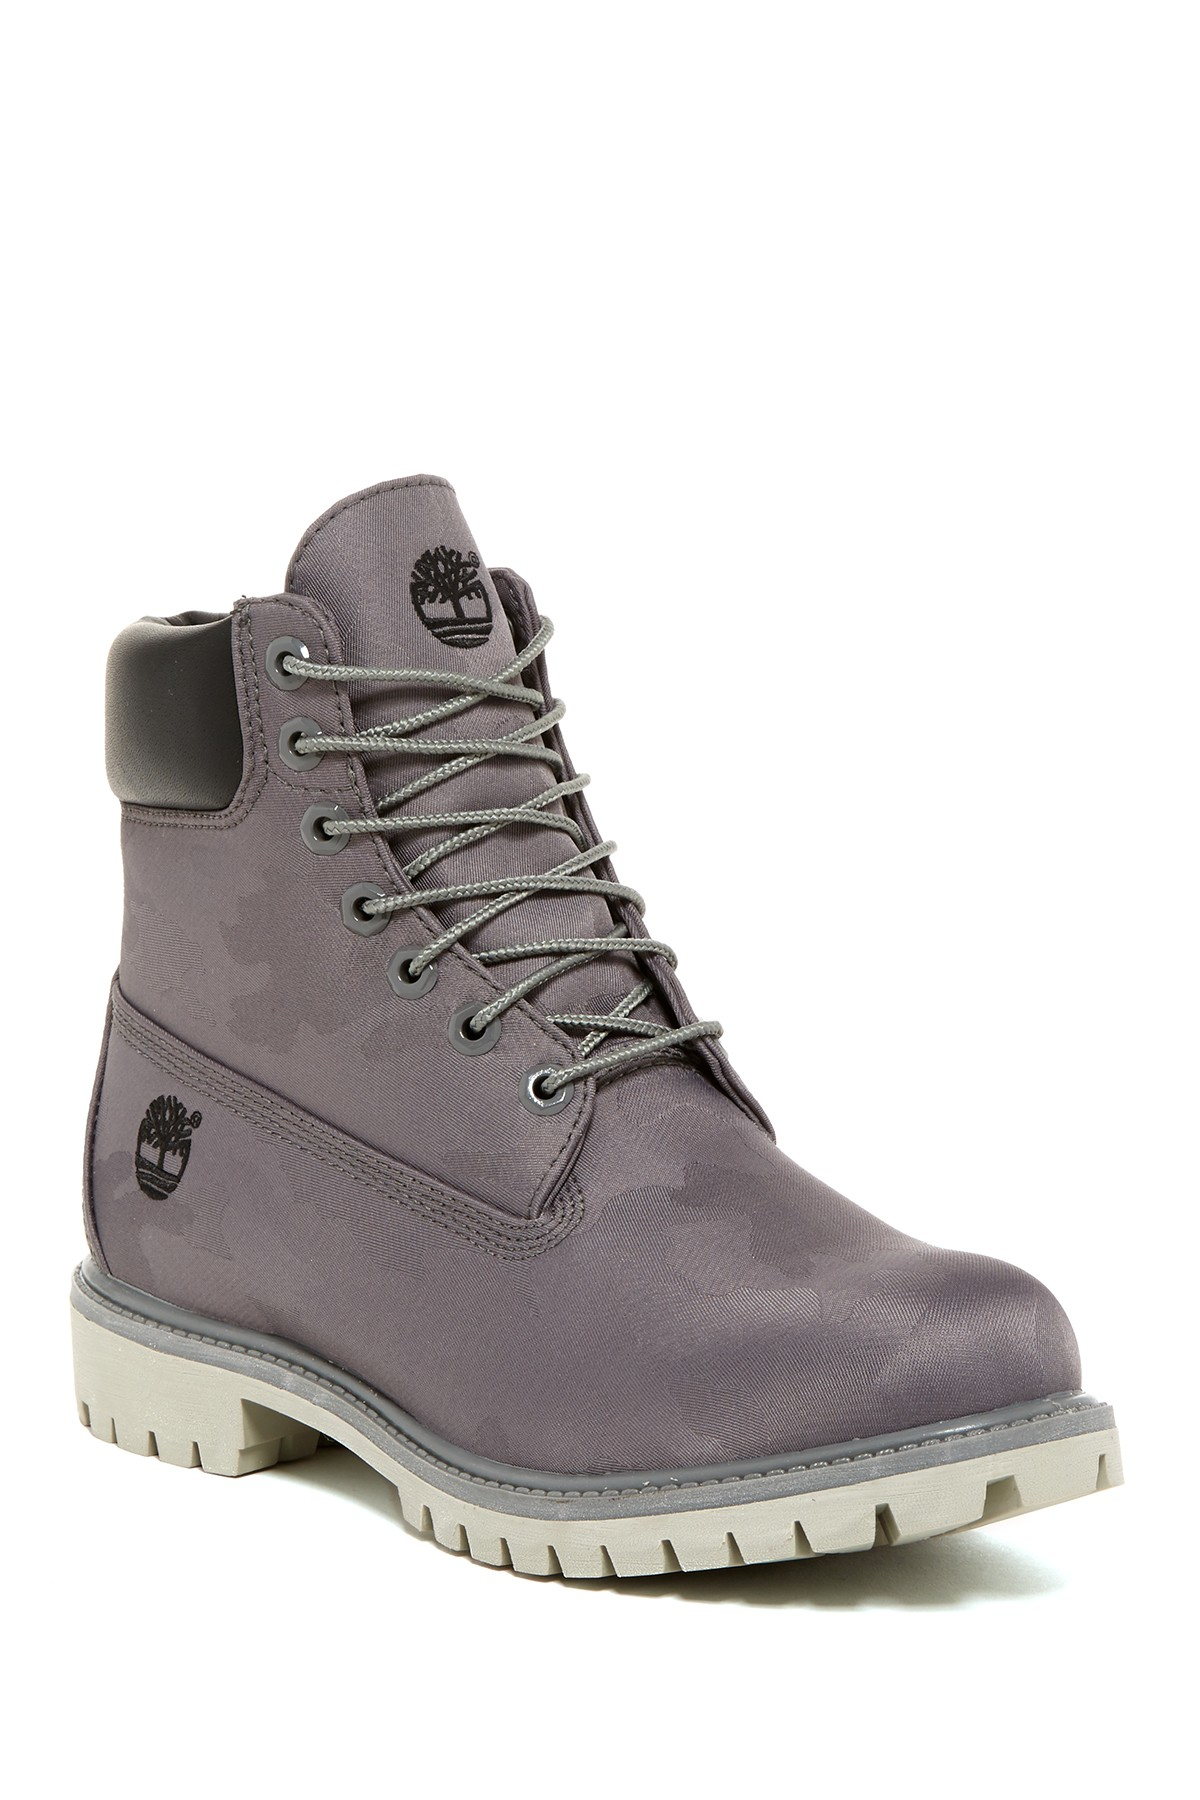 timberland 6 premium waterproof boot in gray lyst. Black Bedroom Furniture Sets. Home Design Ideas